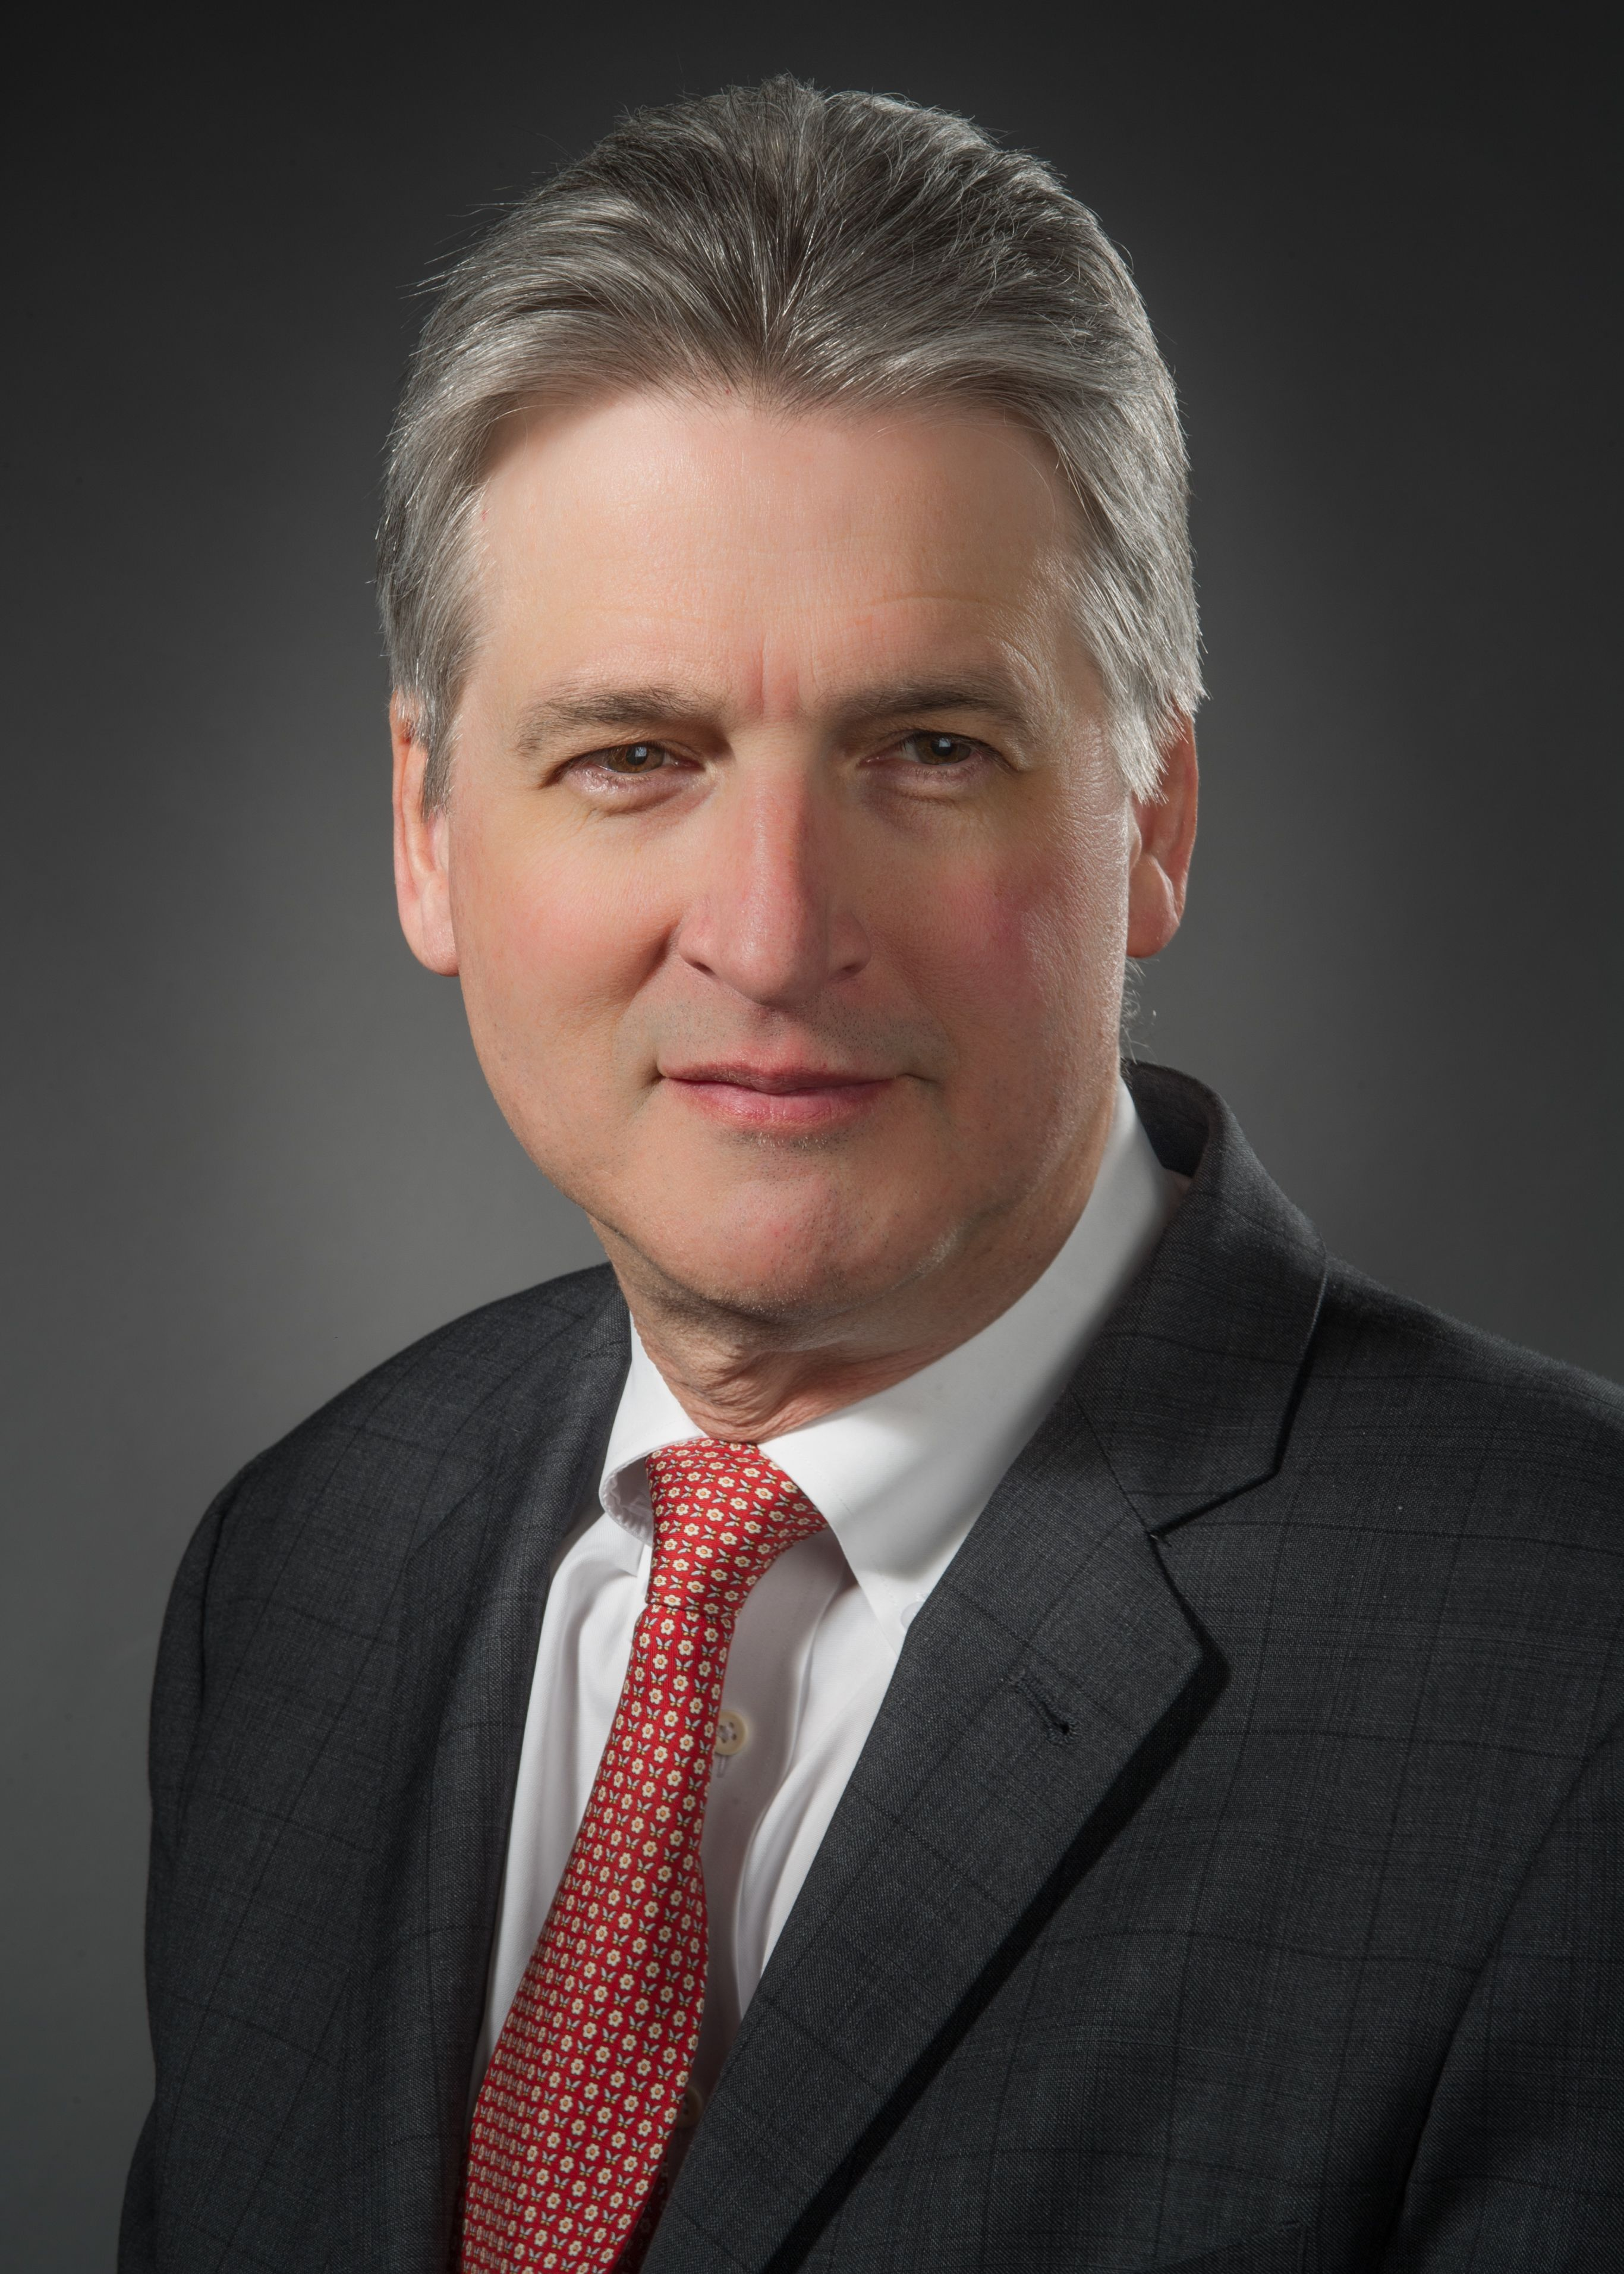 Martin Doerfler, MD, wearing a suit and a red tie